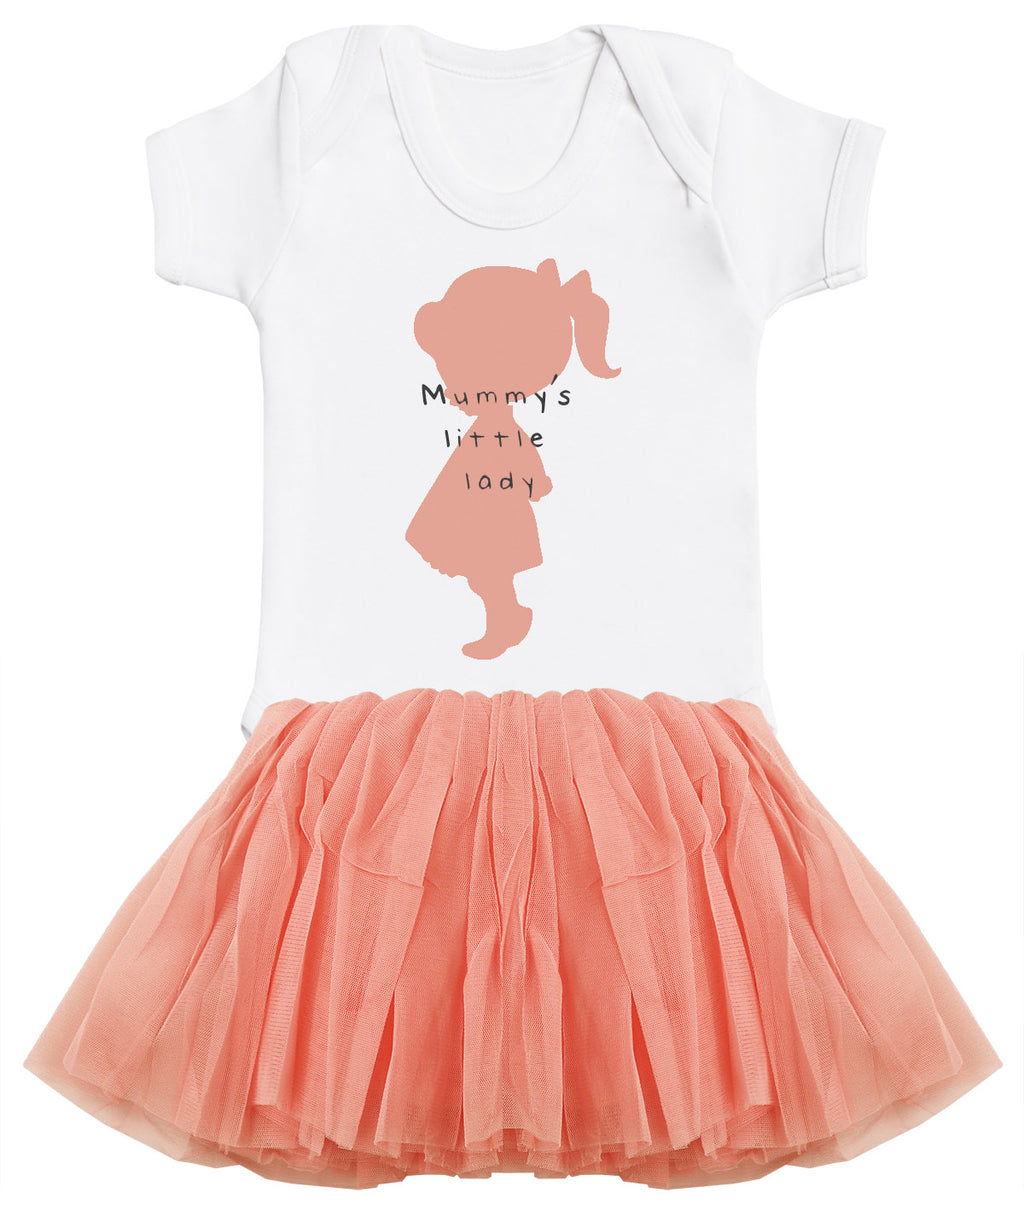 Mummy's Little Lady Baby Bodysuit and Peach Tutu Set